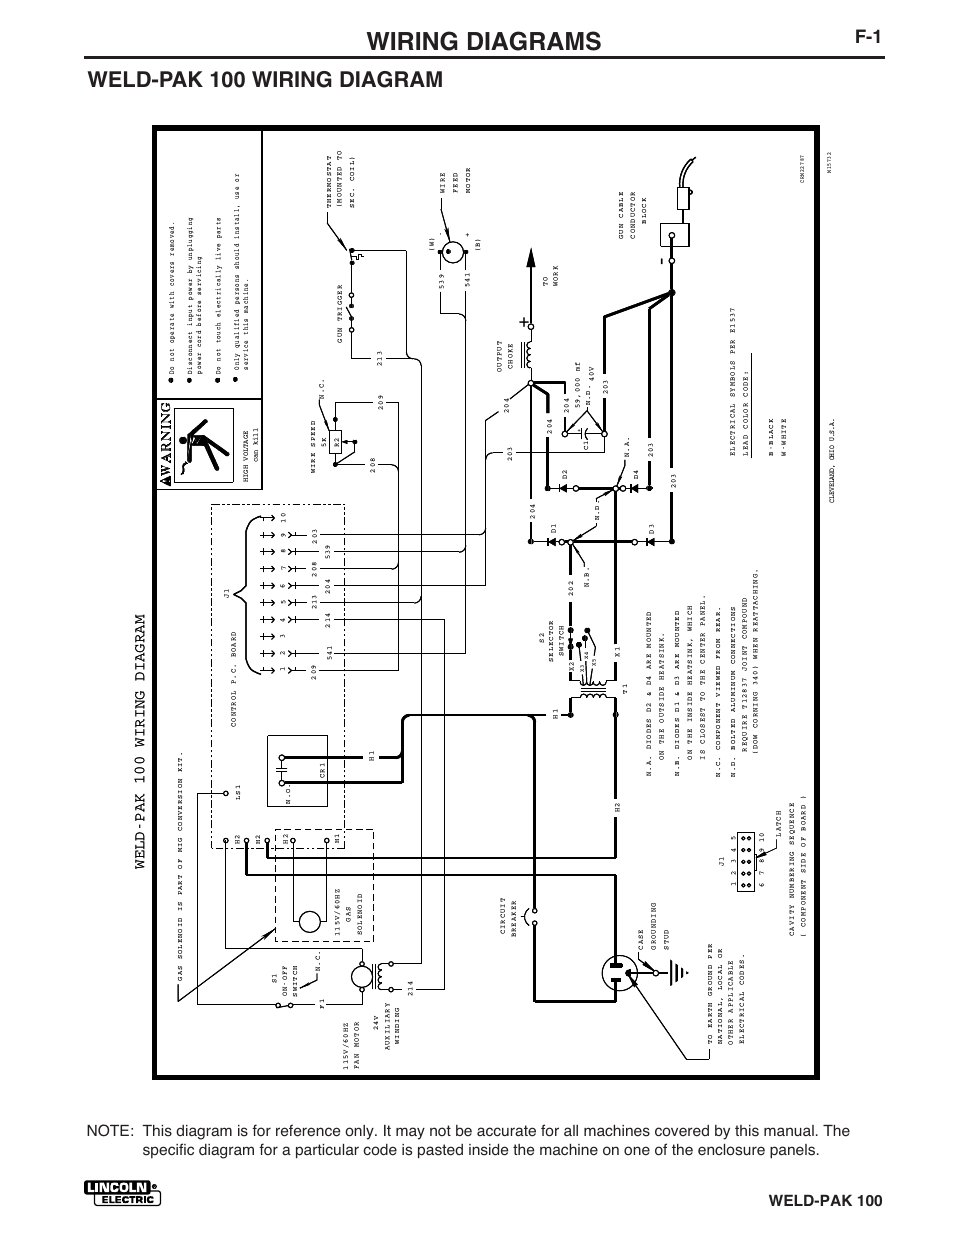 1997 Lincoln Continental Engine Diagram Wiring Library Diagrams Weld Pak 100